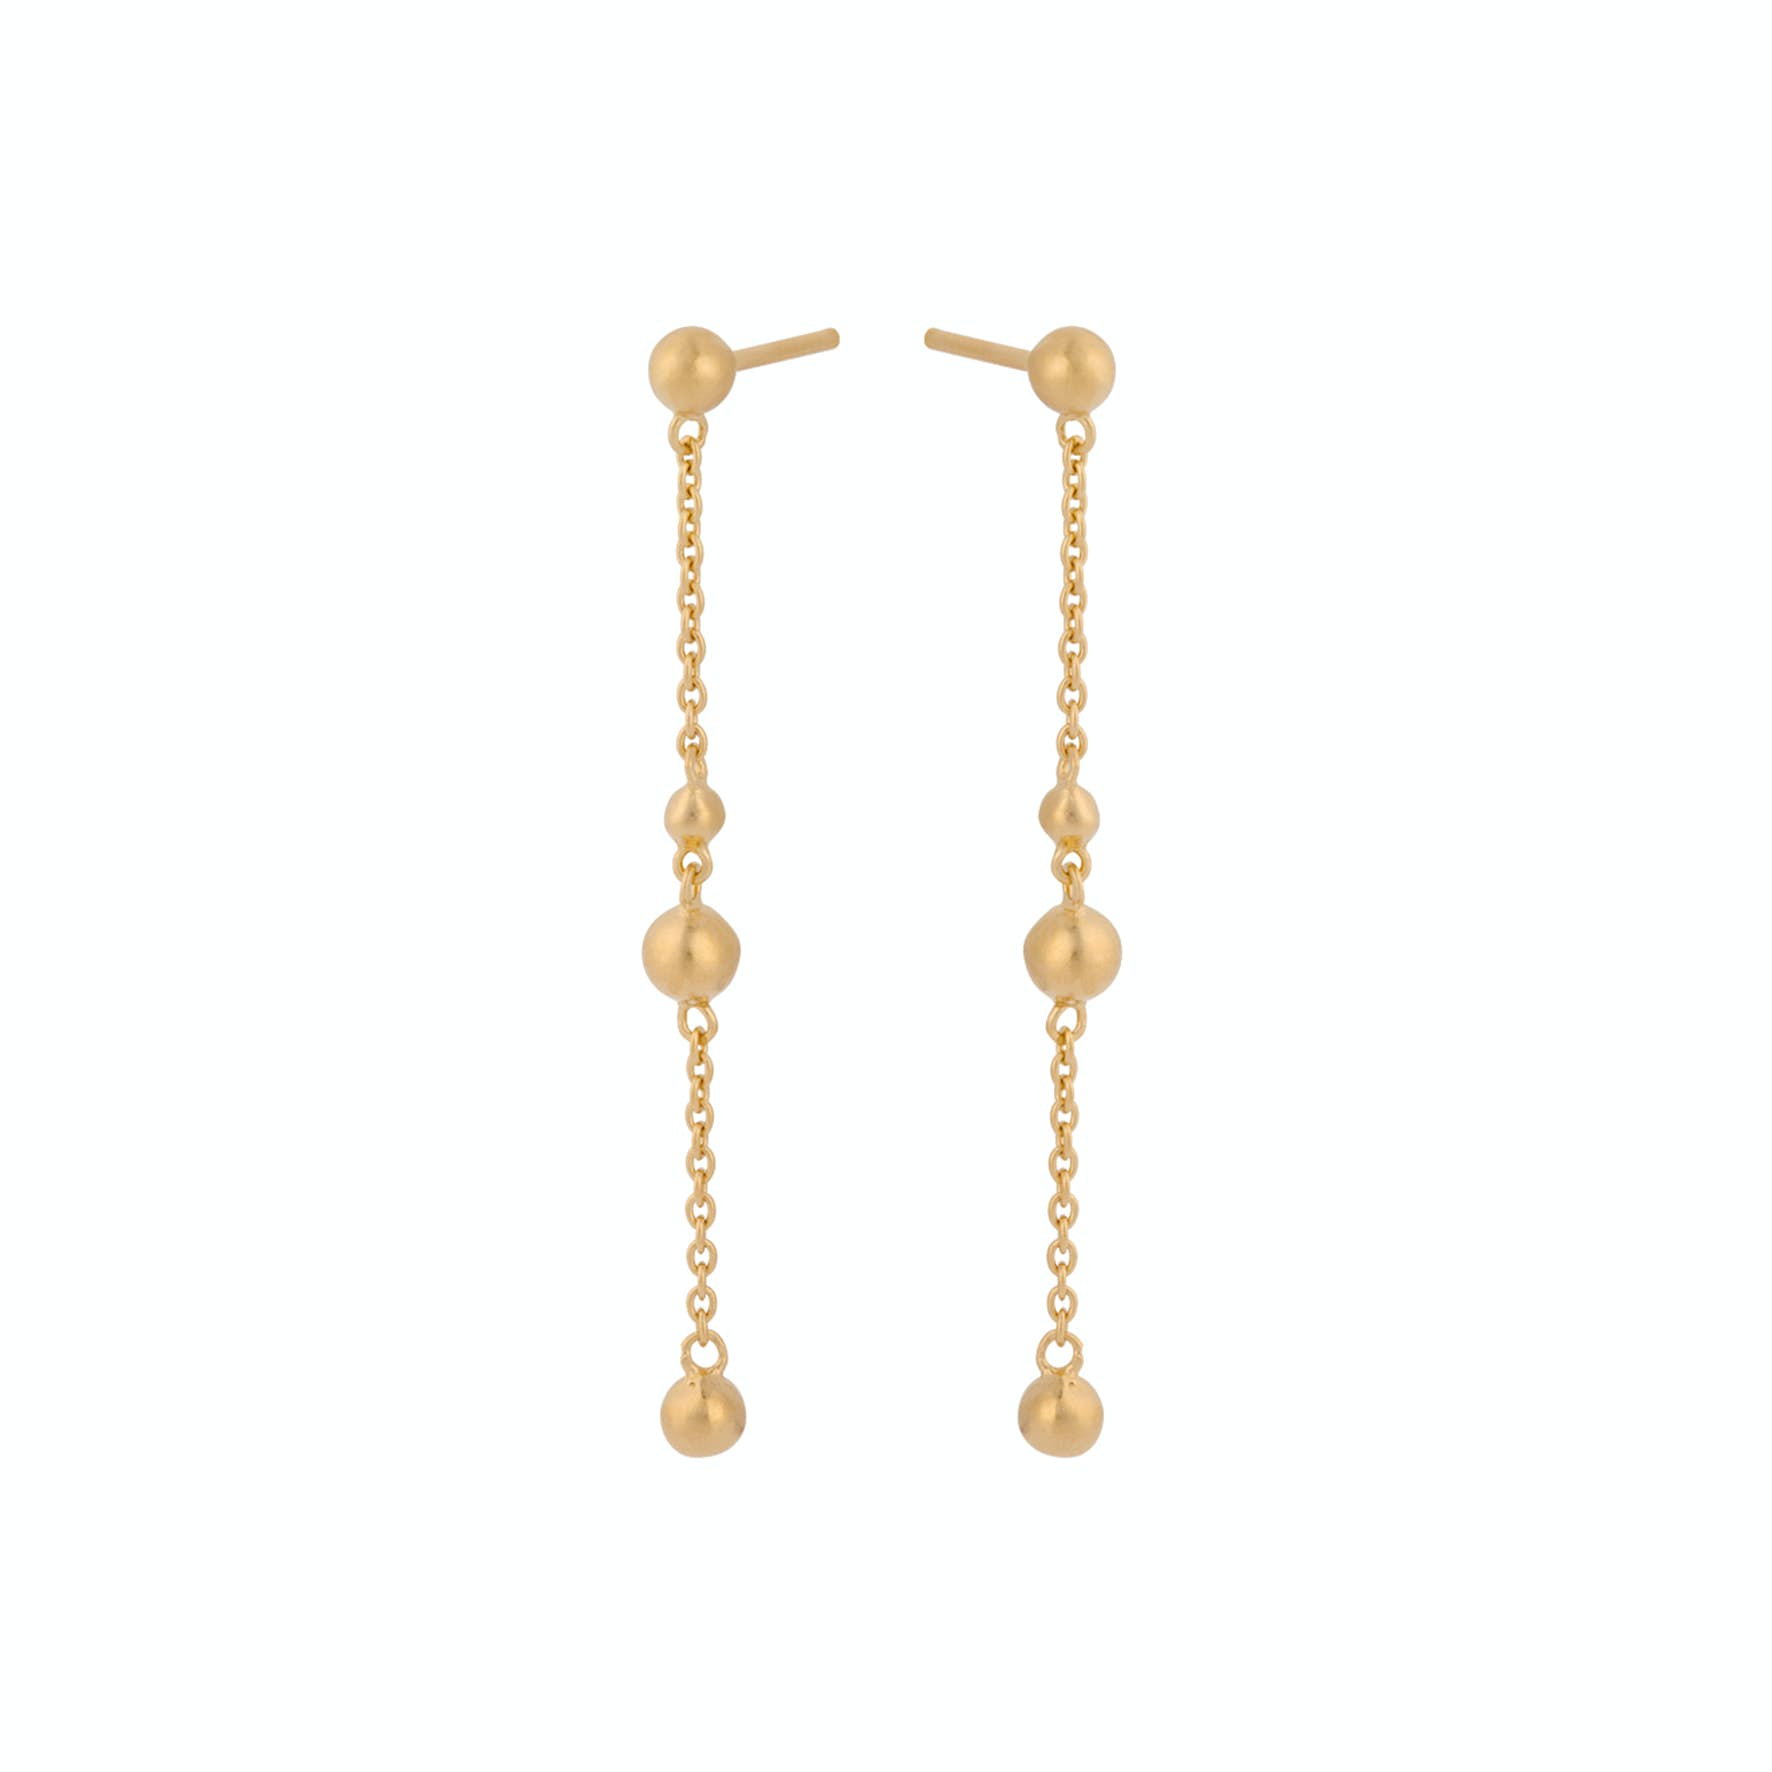 Comet Earchains from Pernille Corydon in Goldplated-Silver Sterling 925